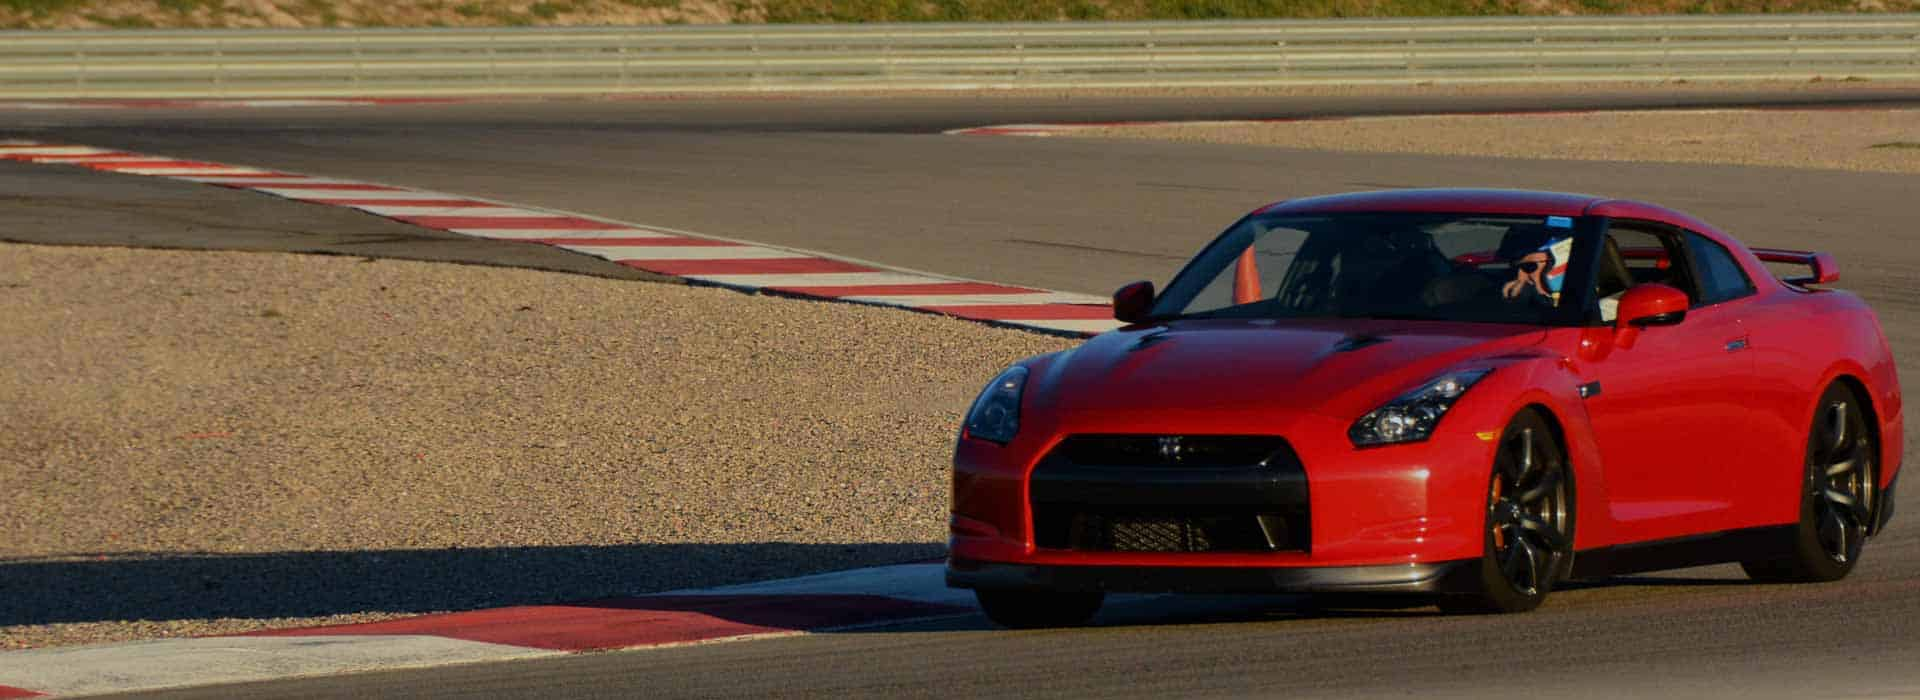 Wide Open Weekend, Wide Open Wednesday Track Days